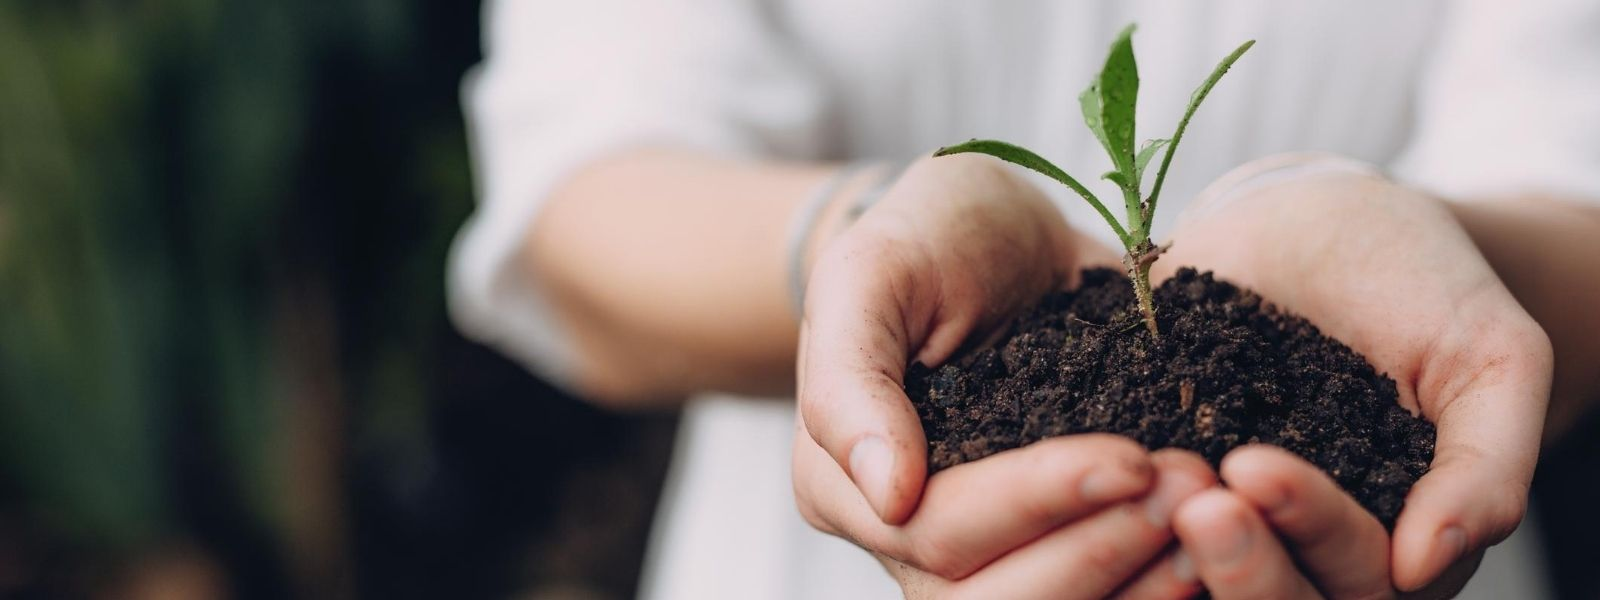 woman's hands holding green plant in soil